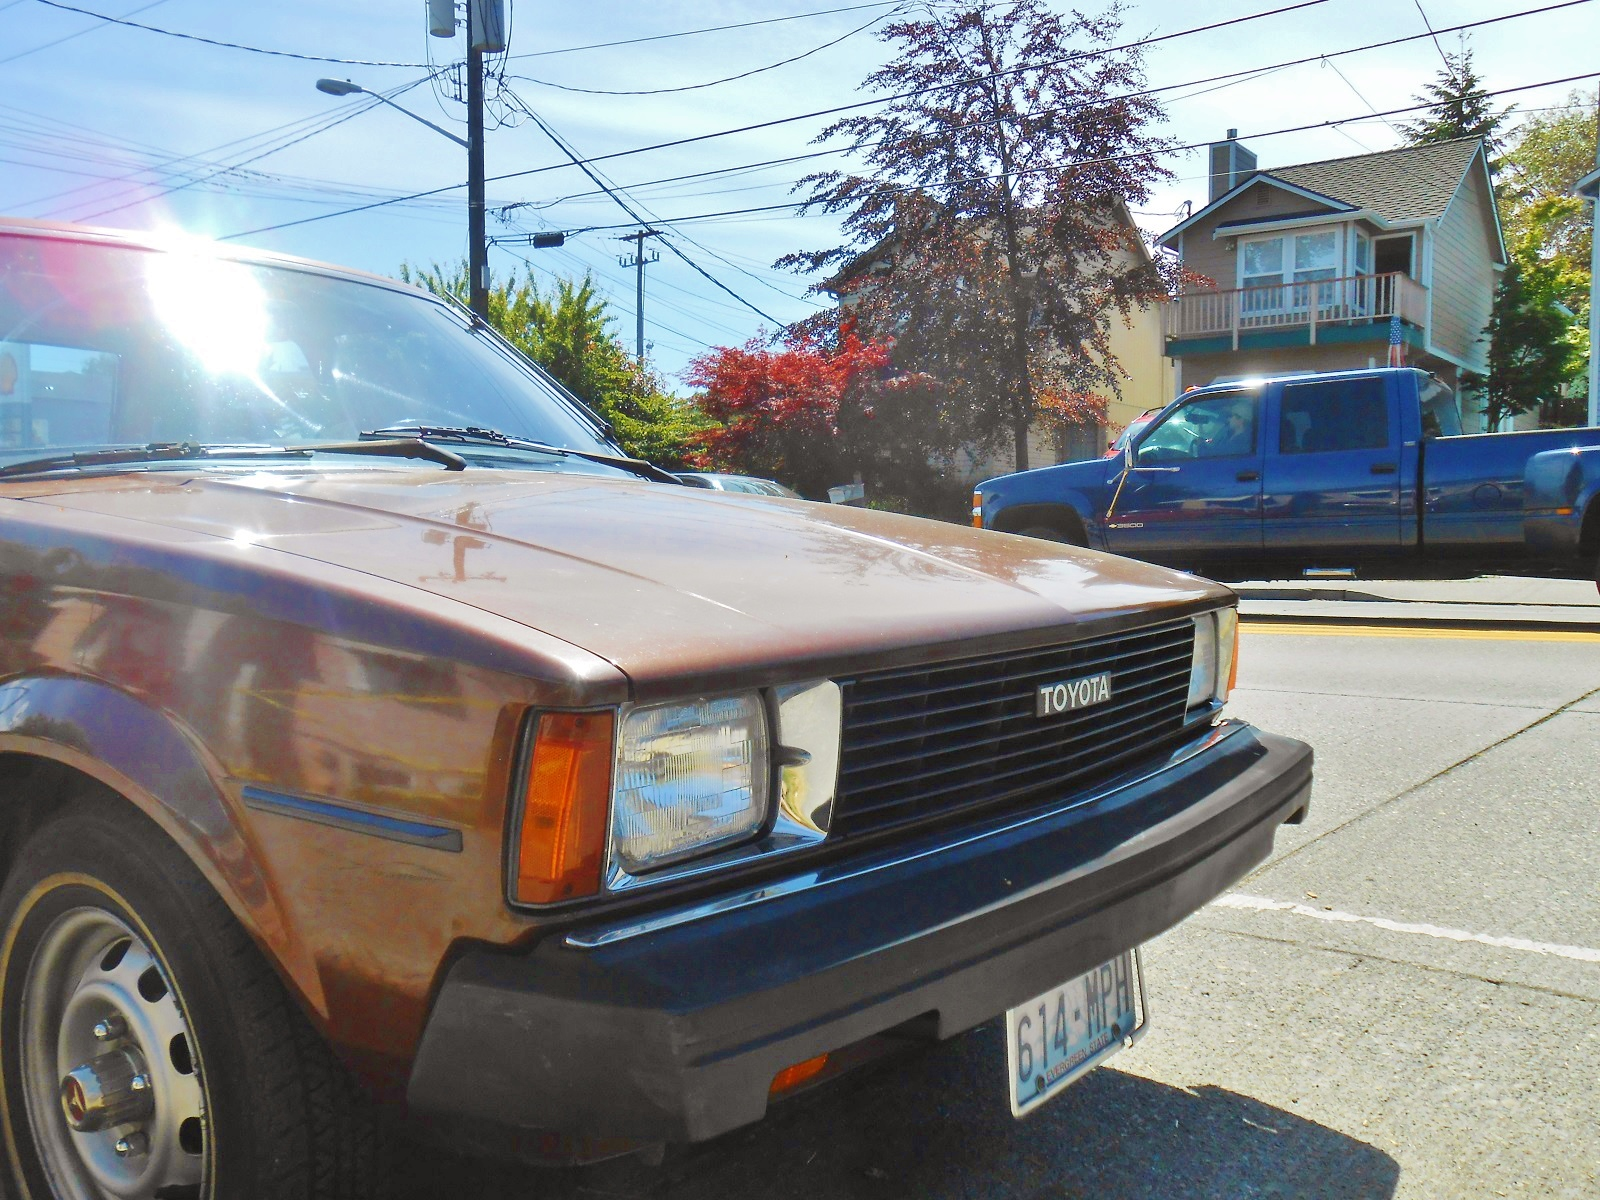 This corolla exhibits the later front end with two square lights earlier cars had quad circular lights this corolla painted in the classic eighties